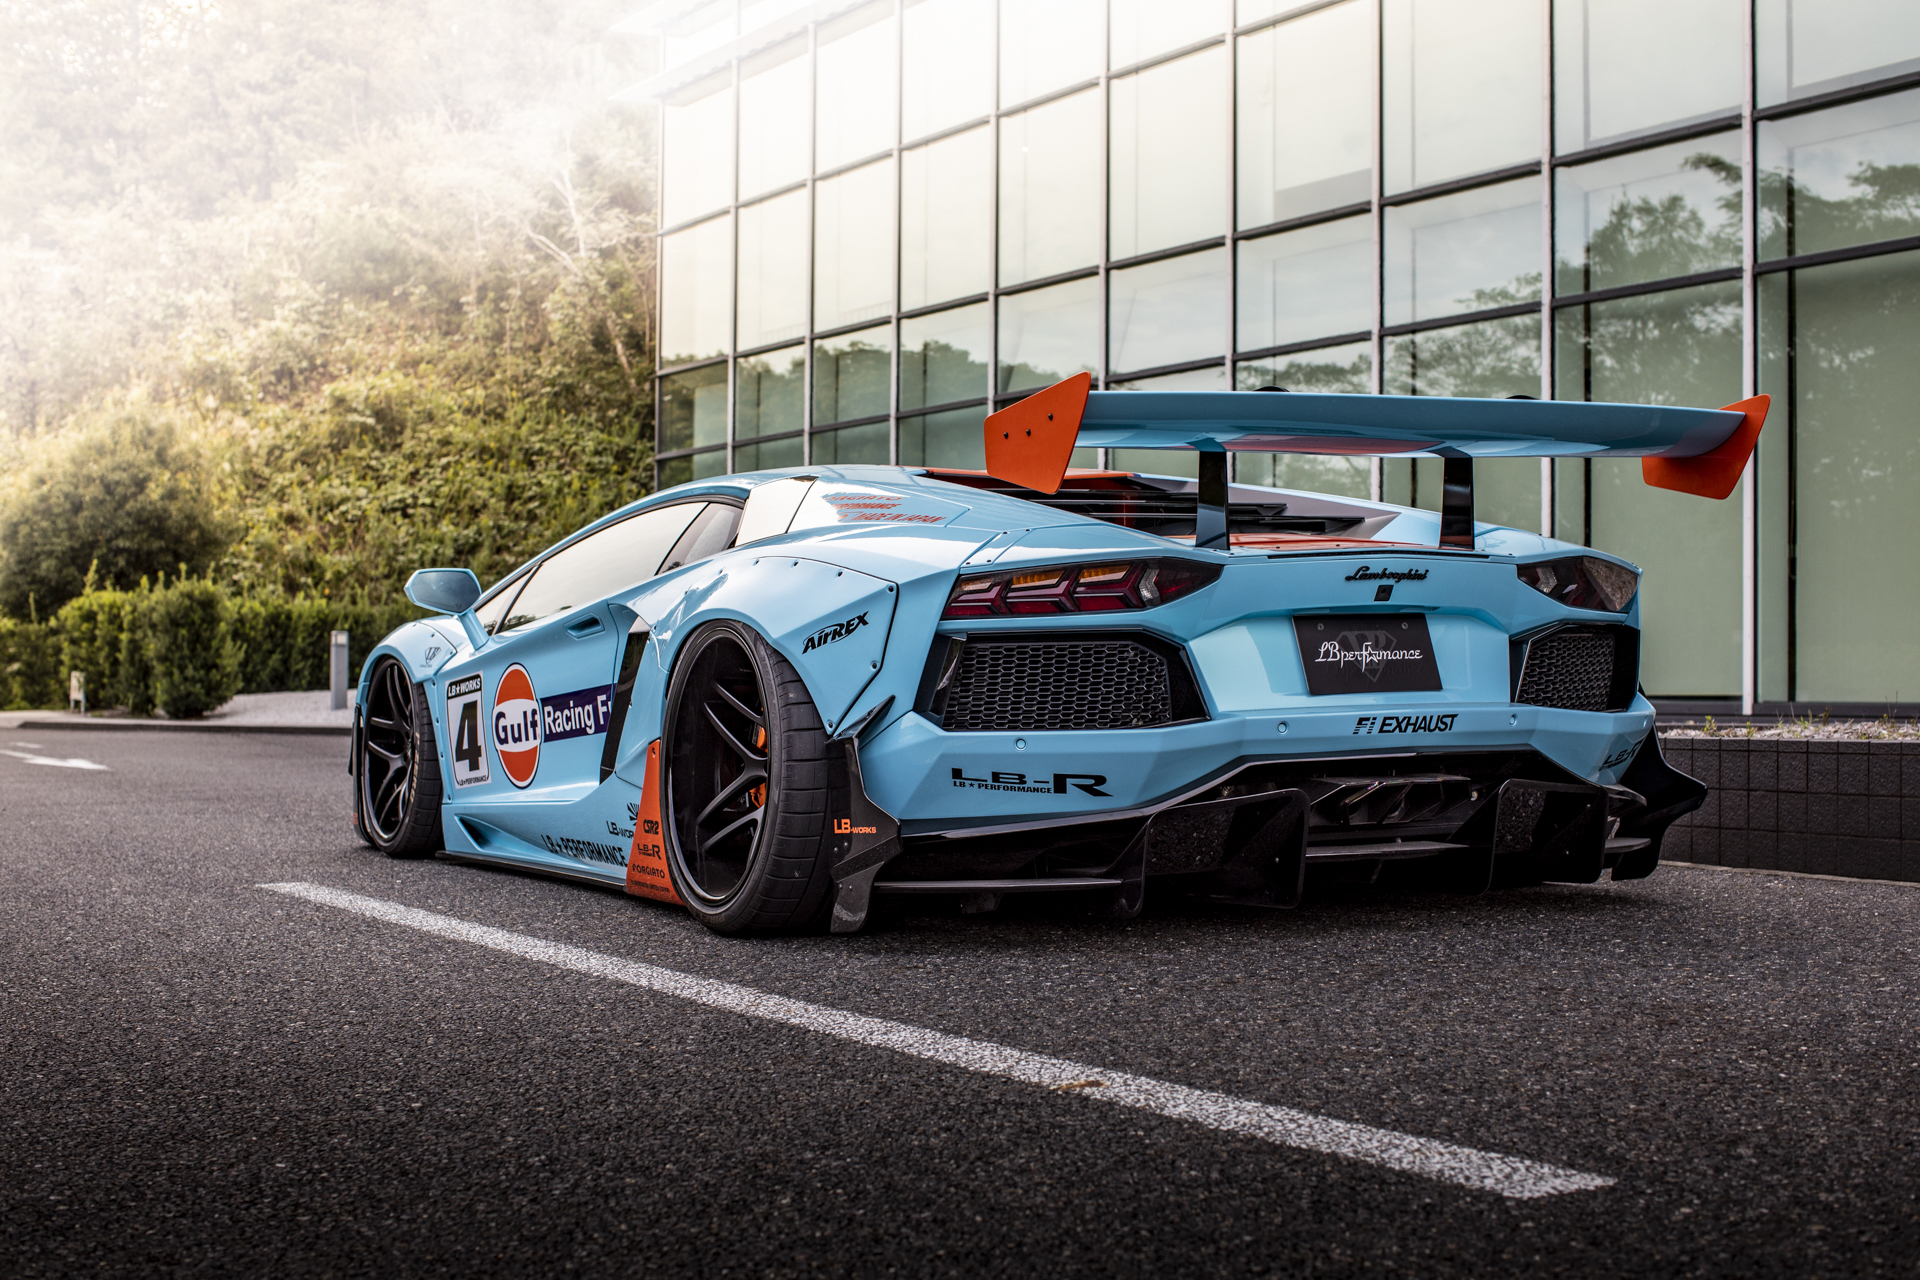 Liberty Walk Lamborghini Aventador Gulf Livery - 2018 - rear side-face